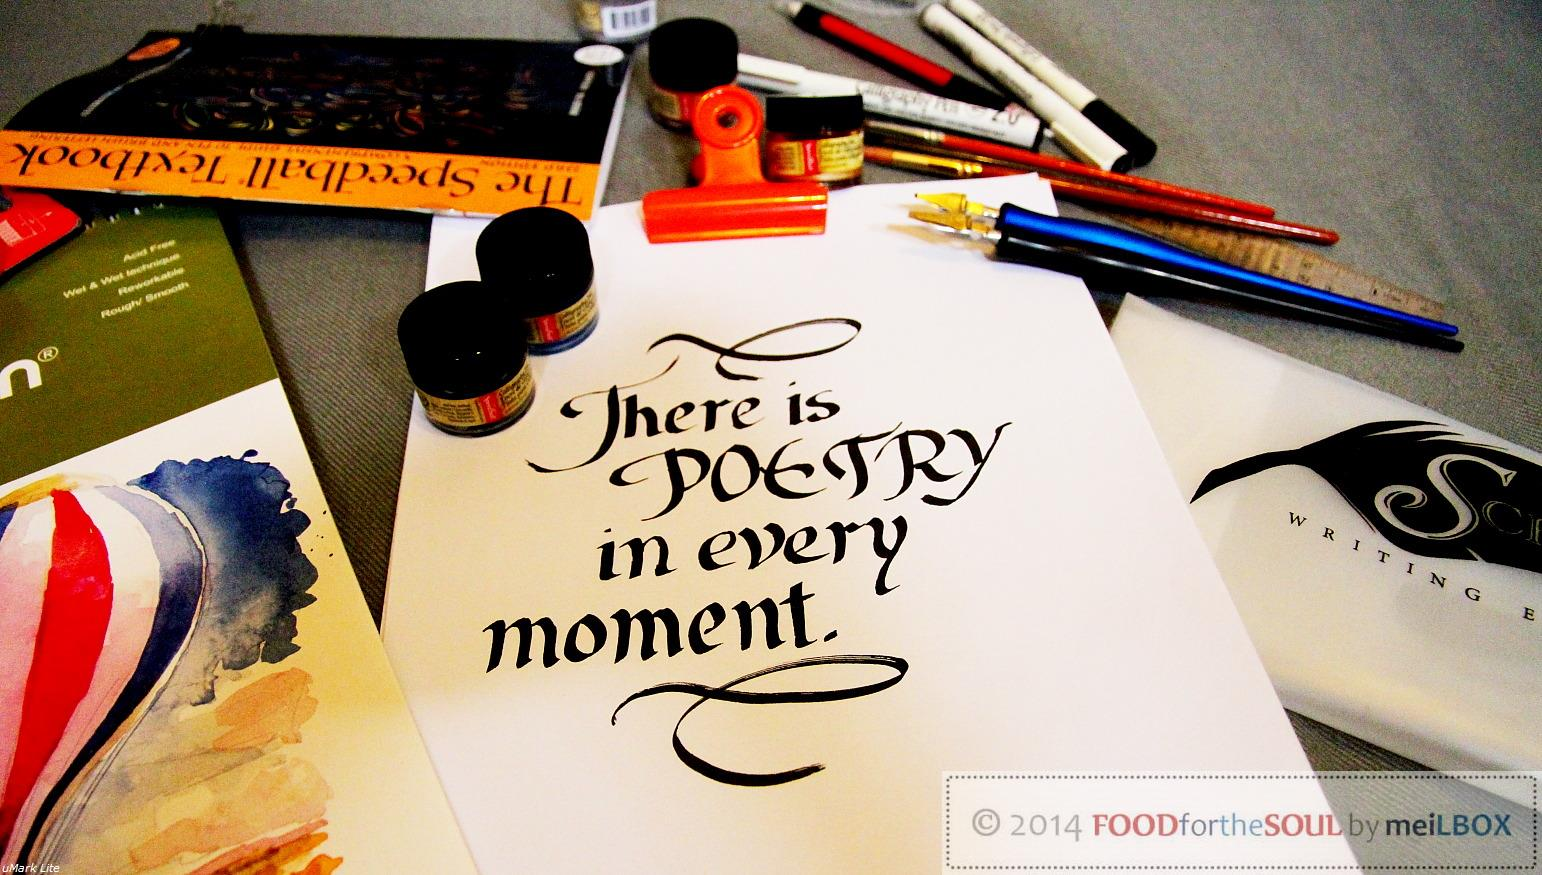 There is poetry in every moment. [Photo, text, and calligraphy by Mary Anne Velas-Suarin]